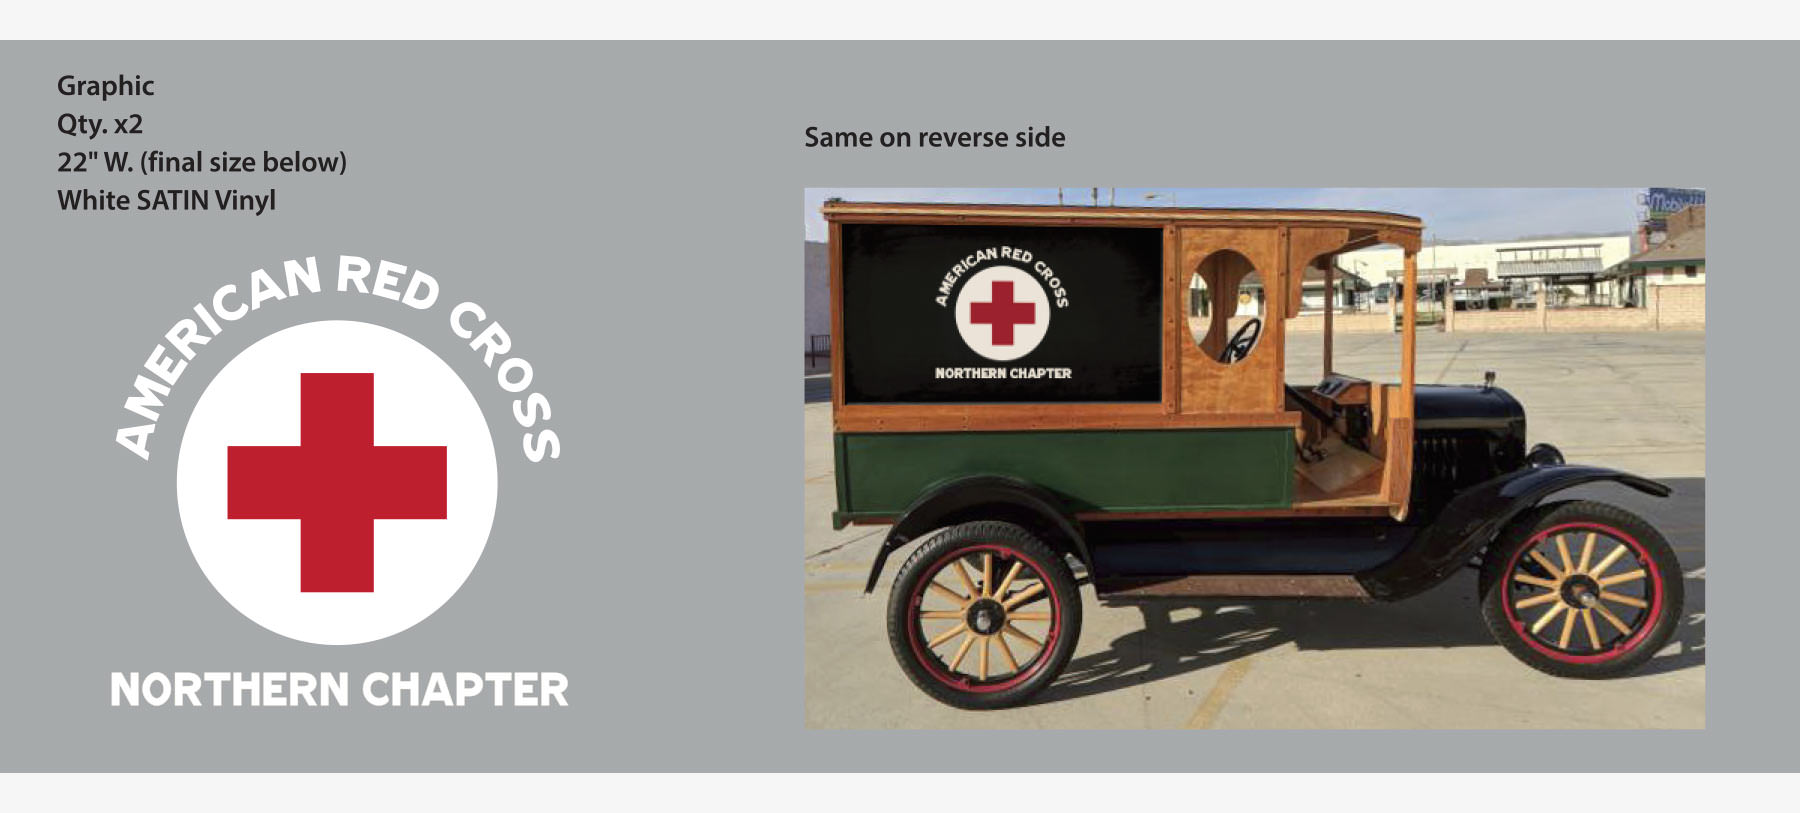 Wells Fargo Anthem - Period Red Cross Graphics